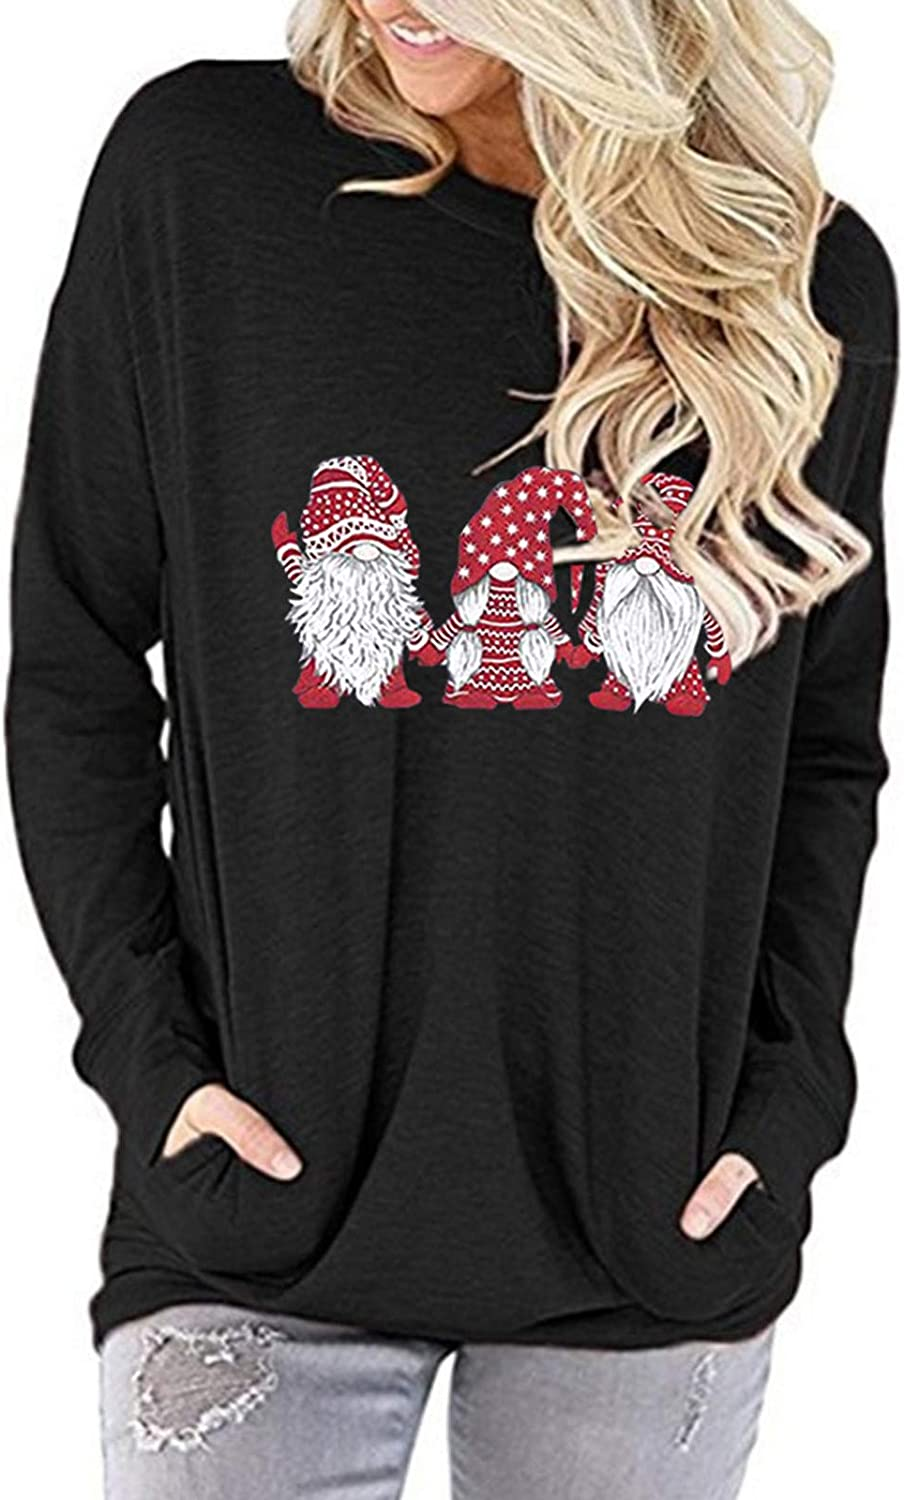 Womens Max 57% OFF Christmas Tops Solid Special price Color Gnome Print Pullover